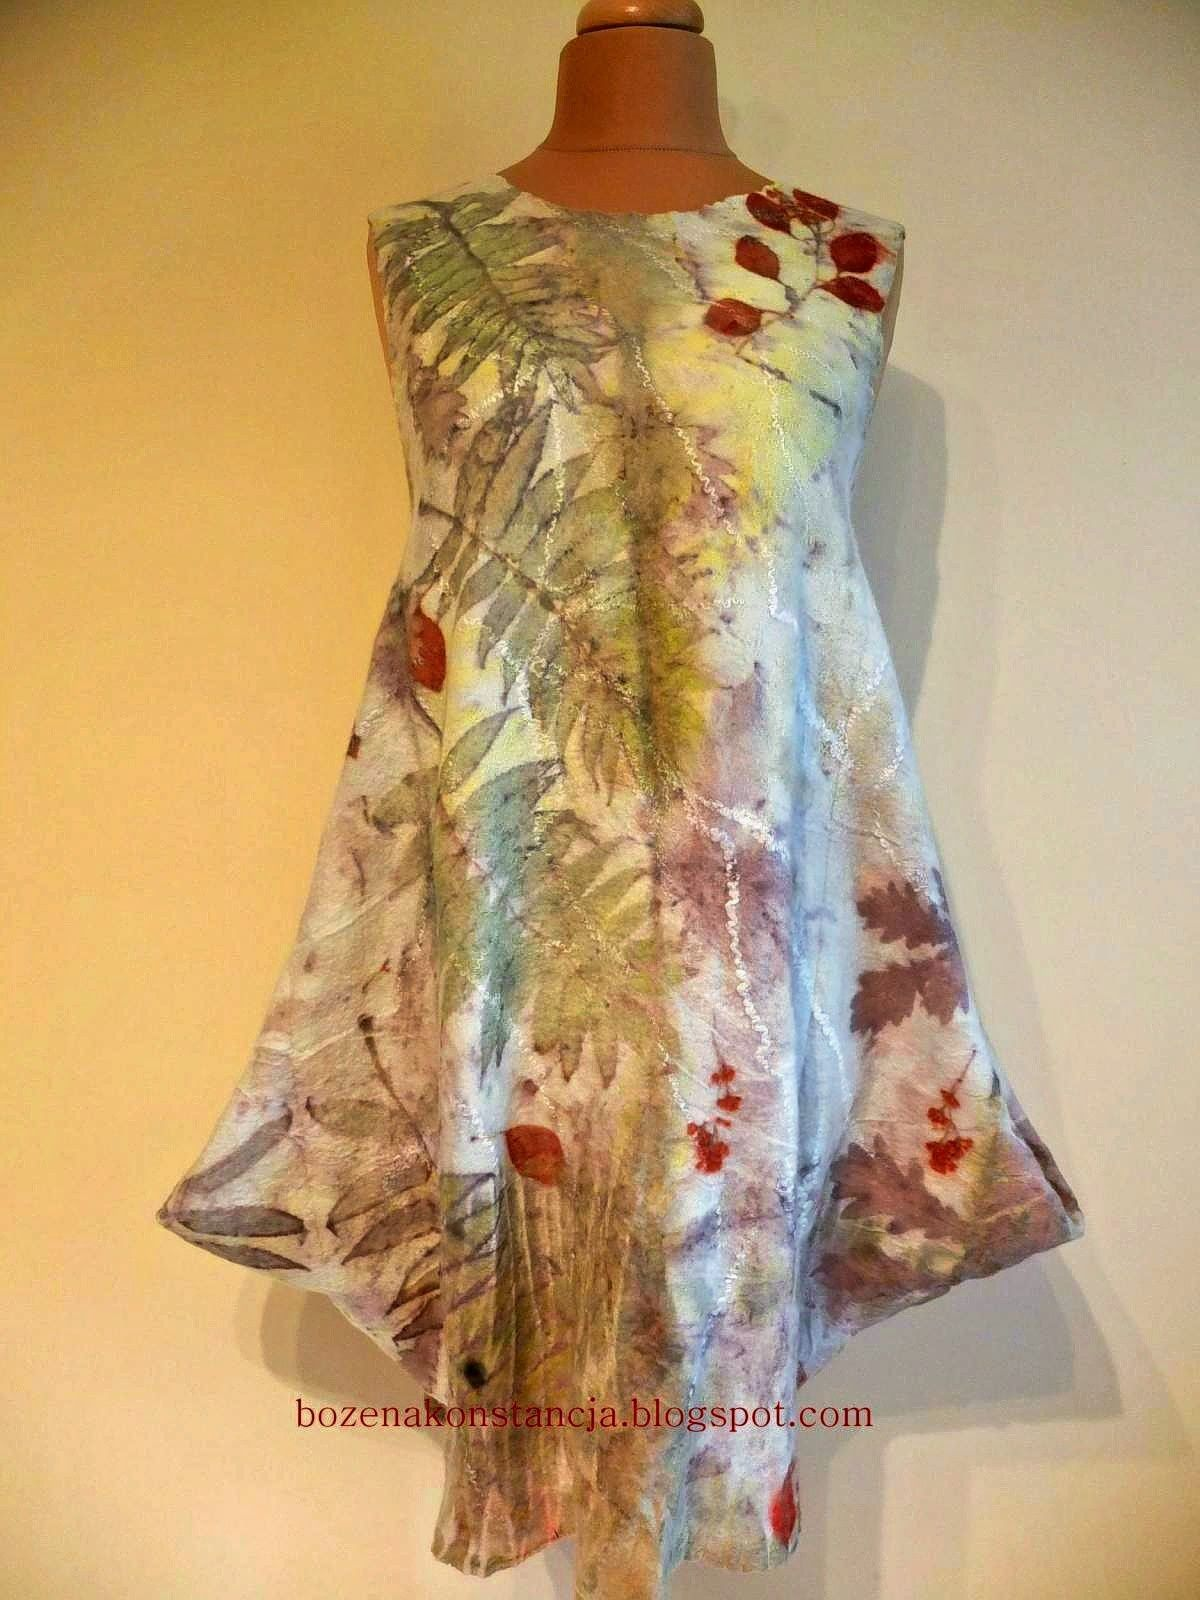 eco printed felt dress | Eco print natural dyeing | How to ...